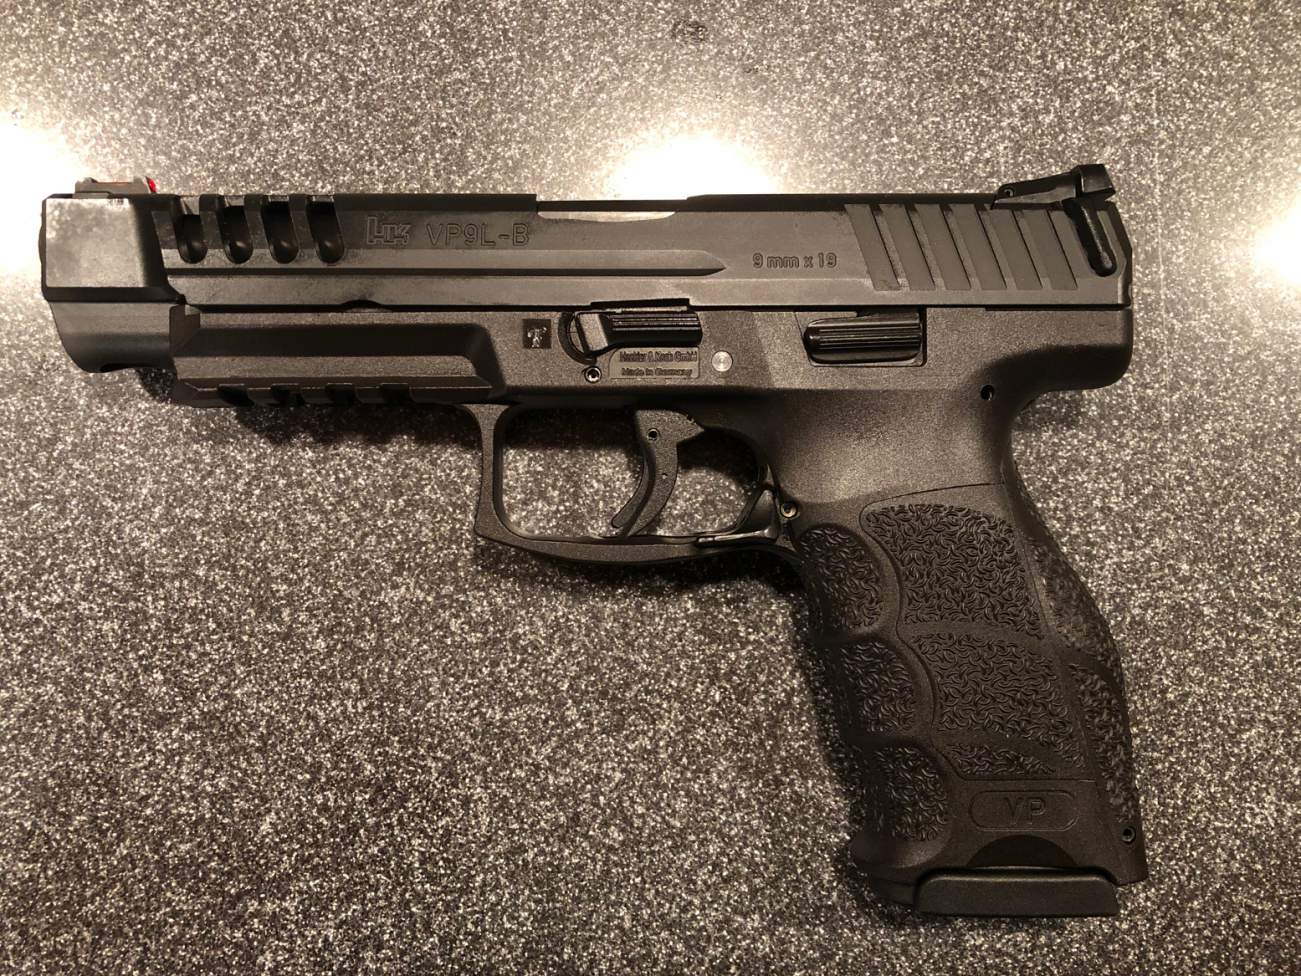 Heckler & Koch's VP9 Gun: The 'People's Pistol' Should Be Feared